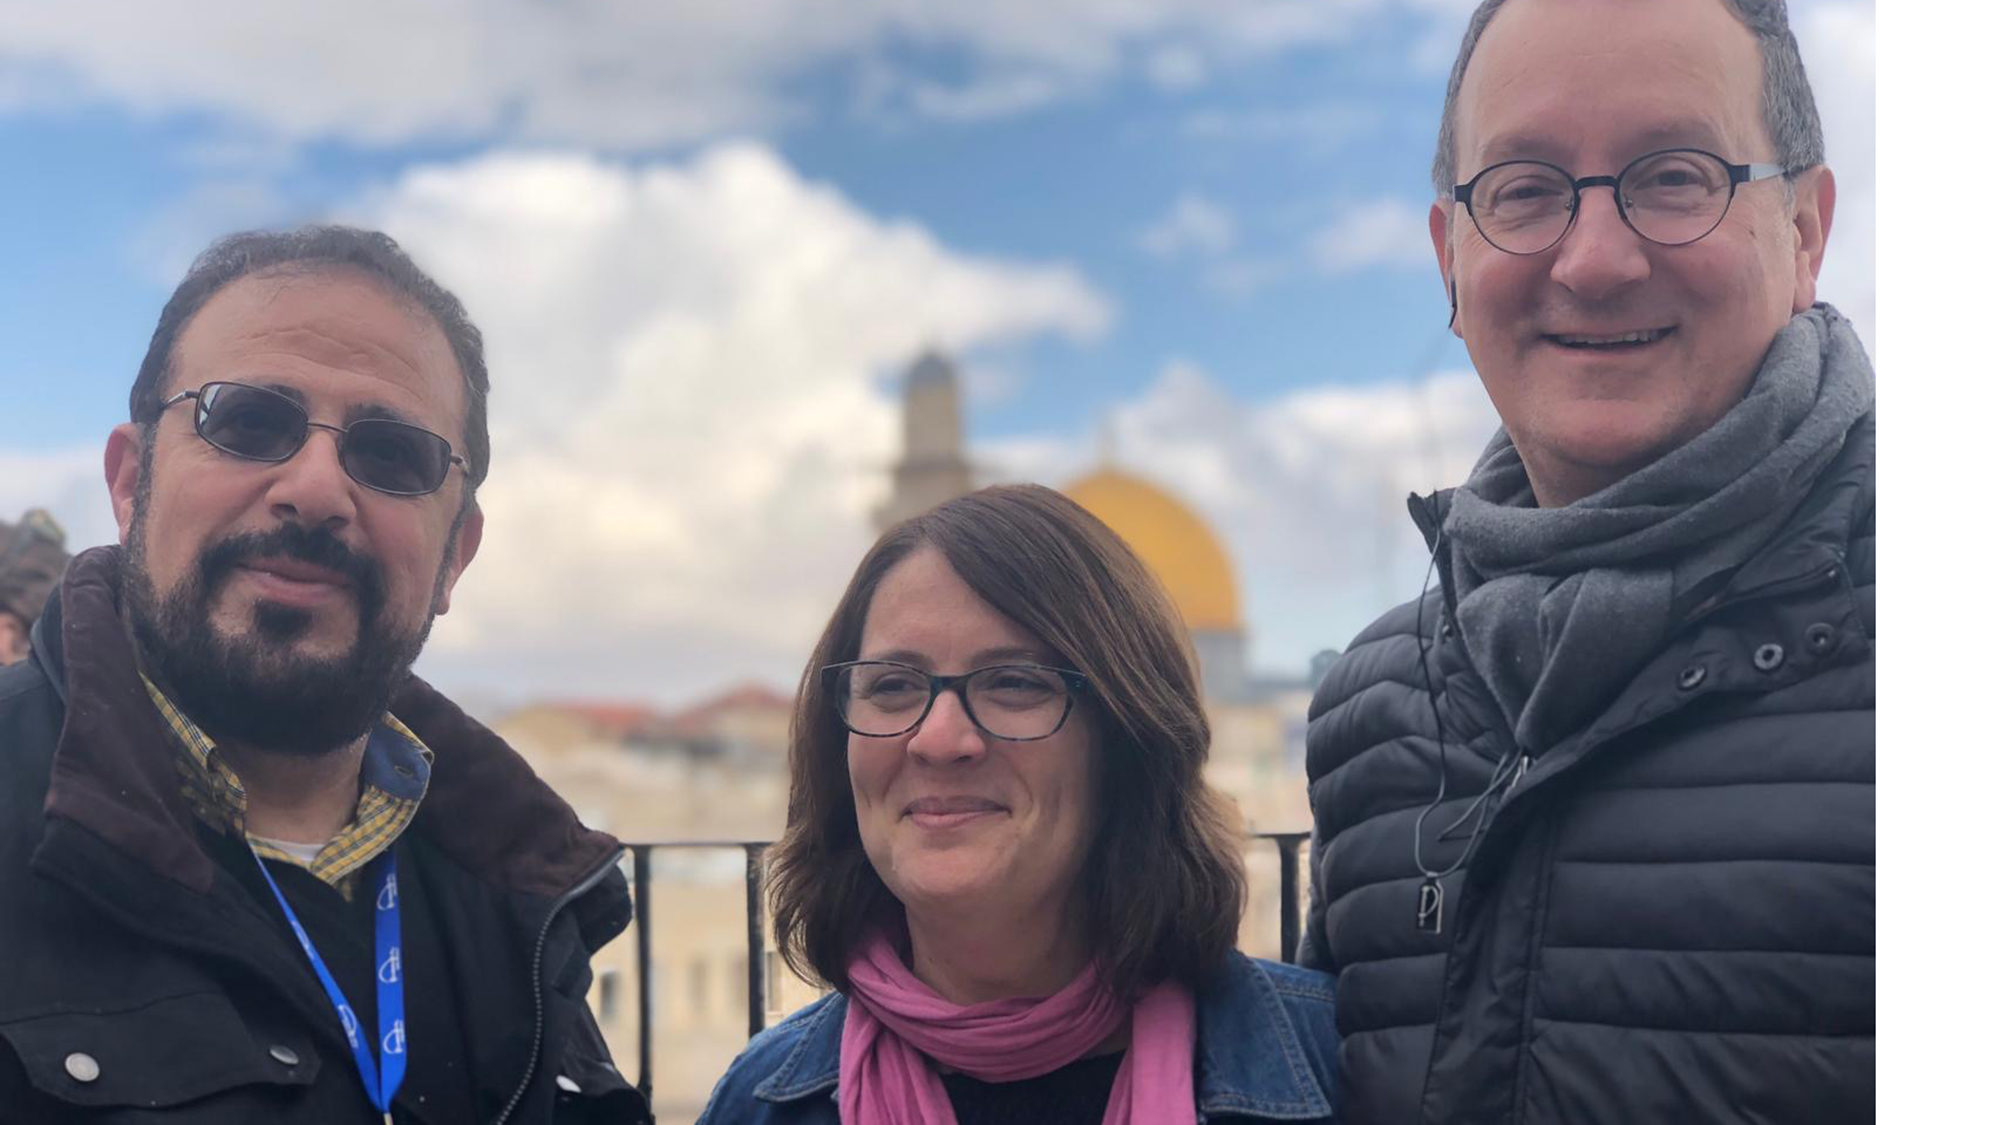 Yahya Hendi, Rachael Gartner and Mark Bosco in front of the Dome of the Rock in the Holy Land